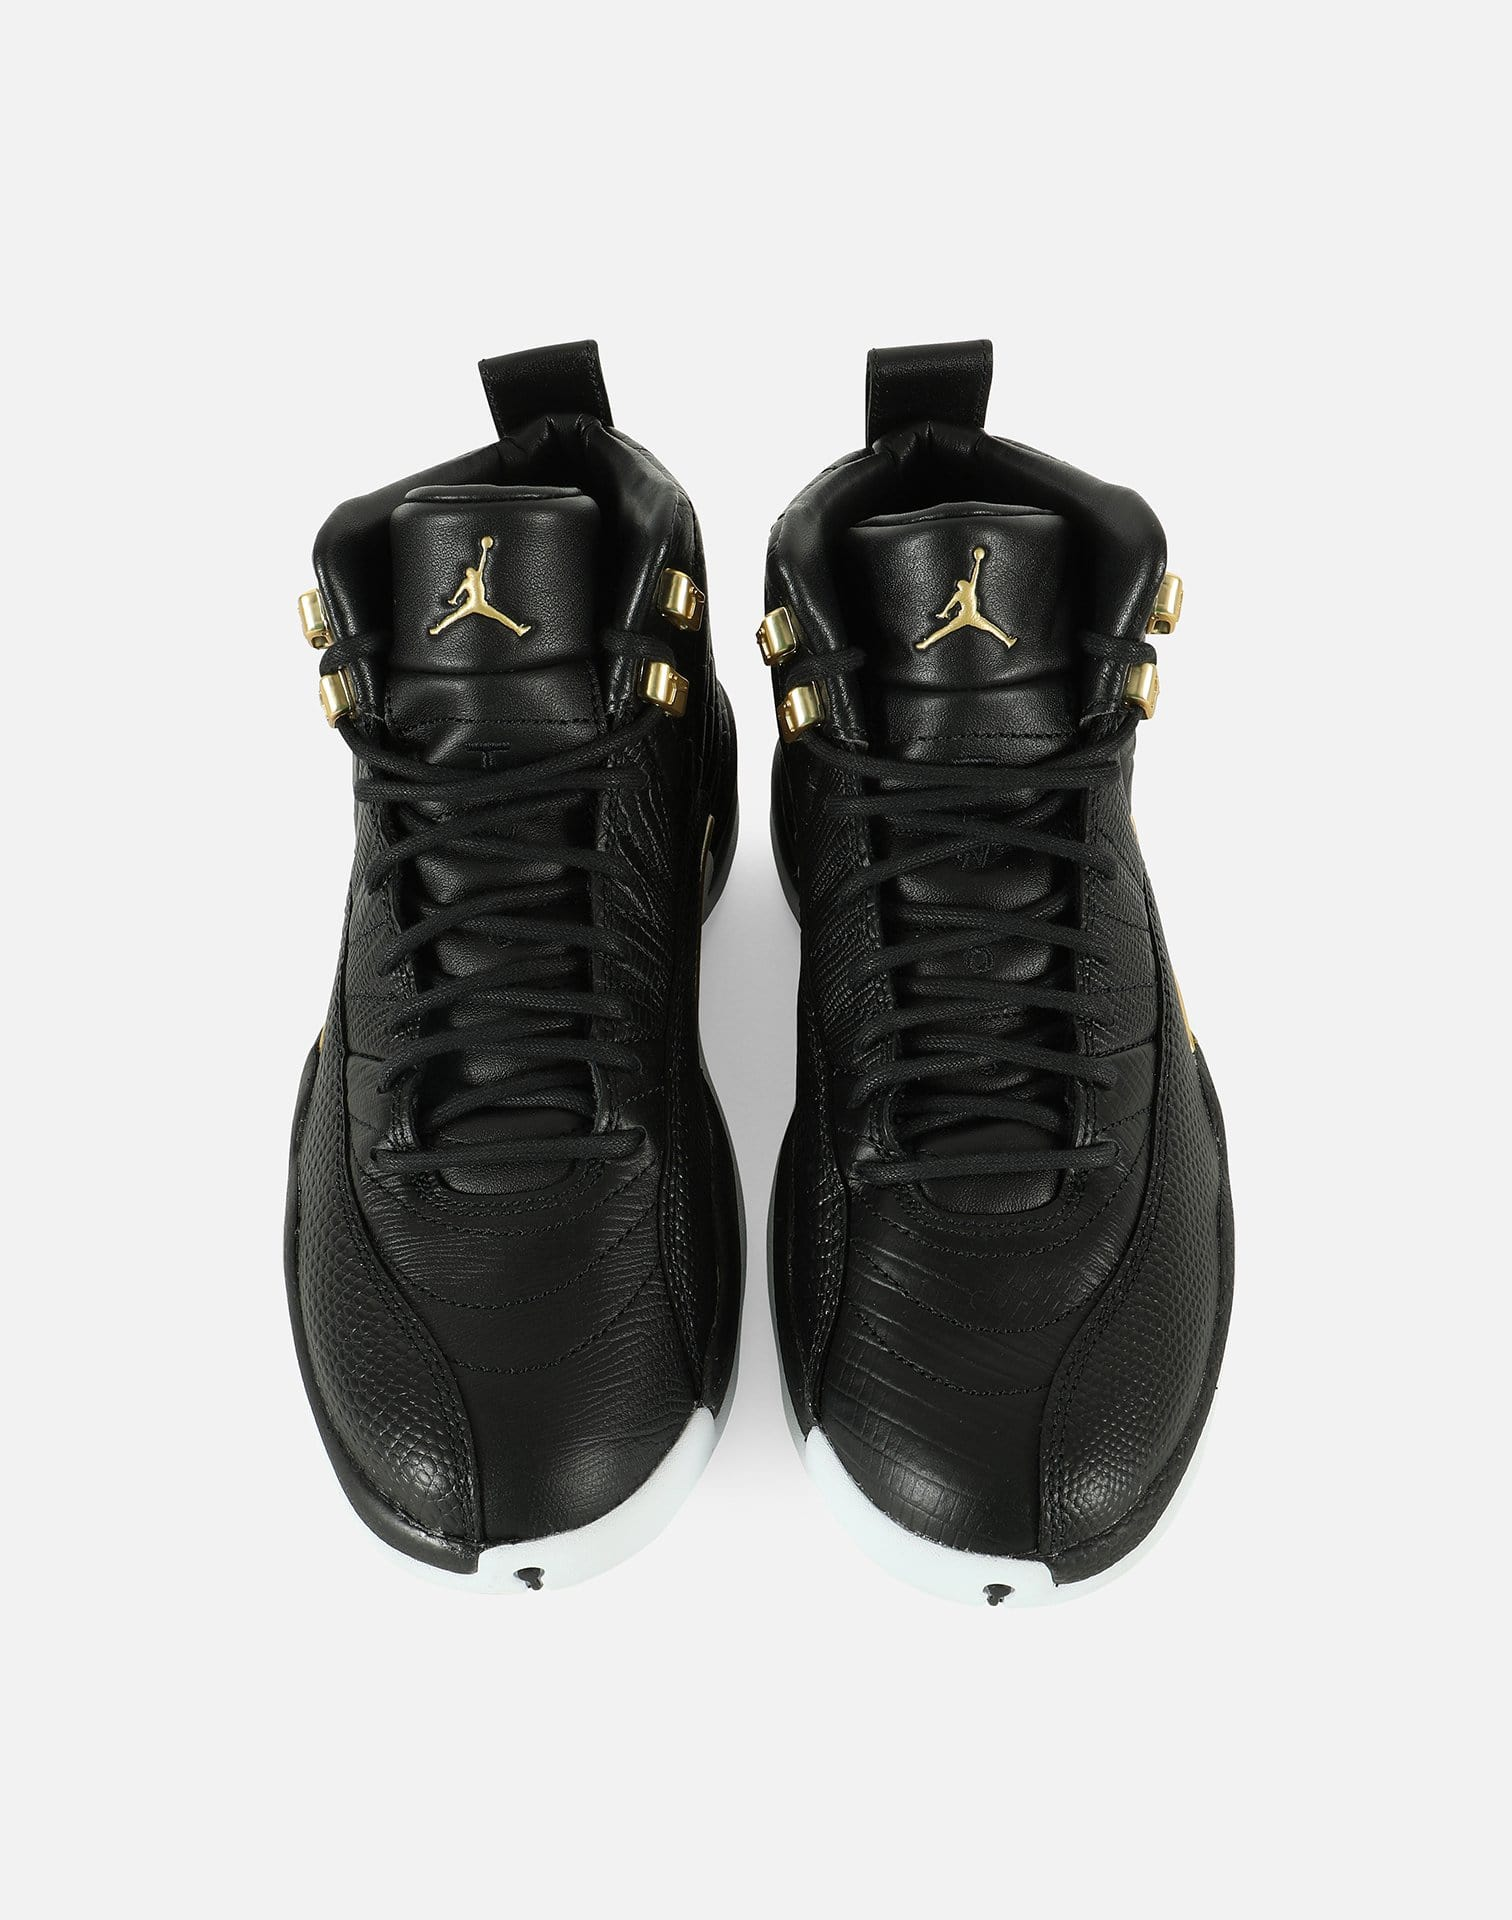 Jordan Women's Air Jordan 12 'Midnight Black'